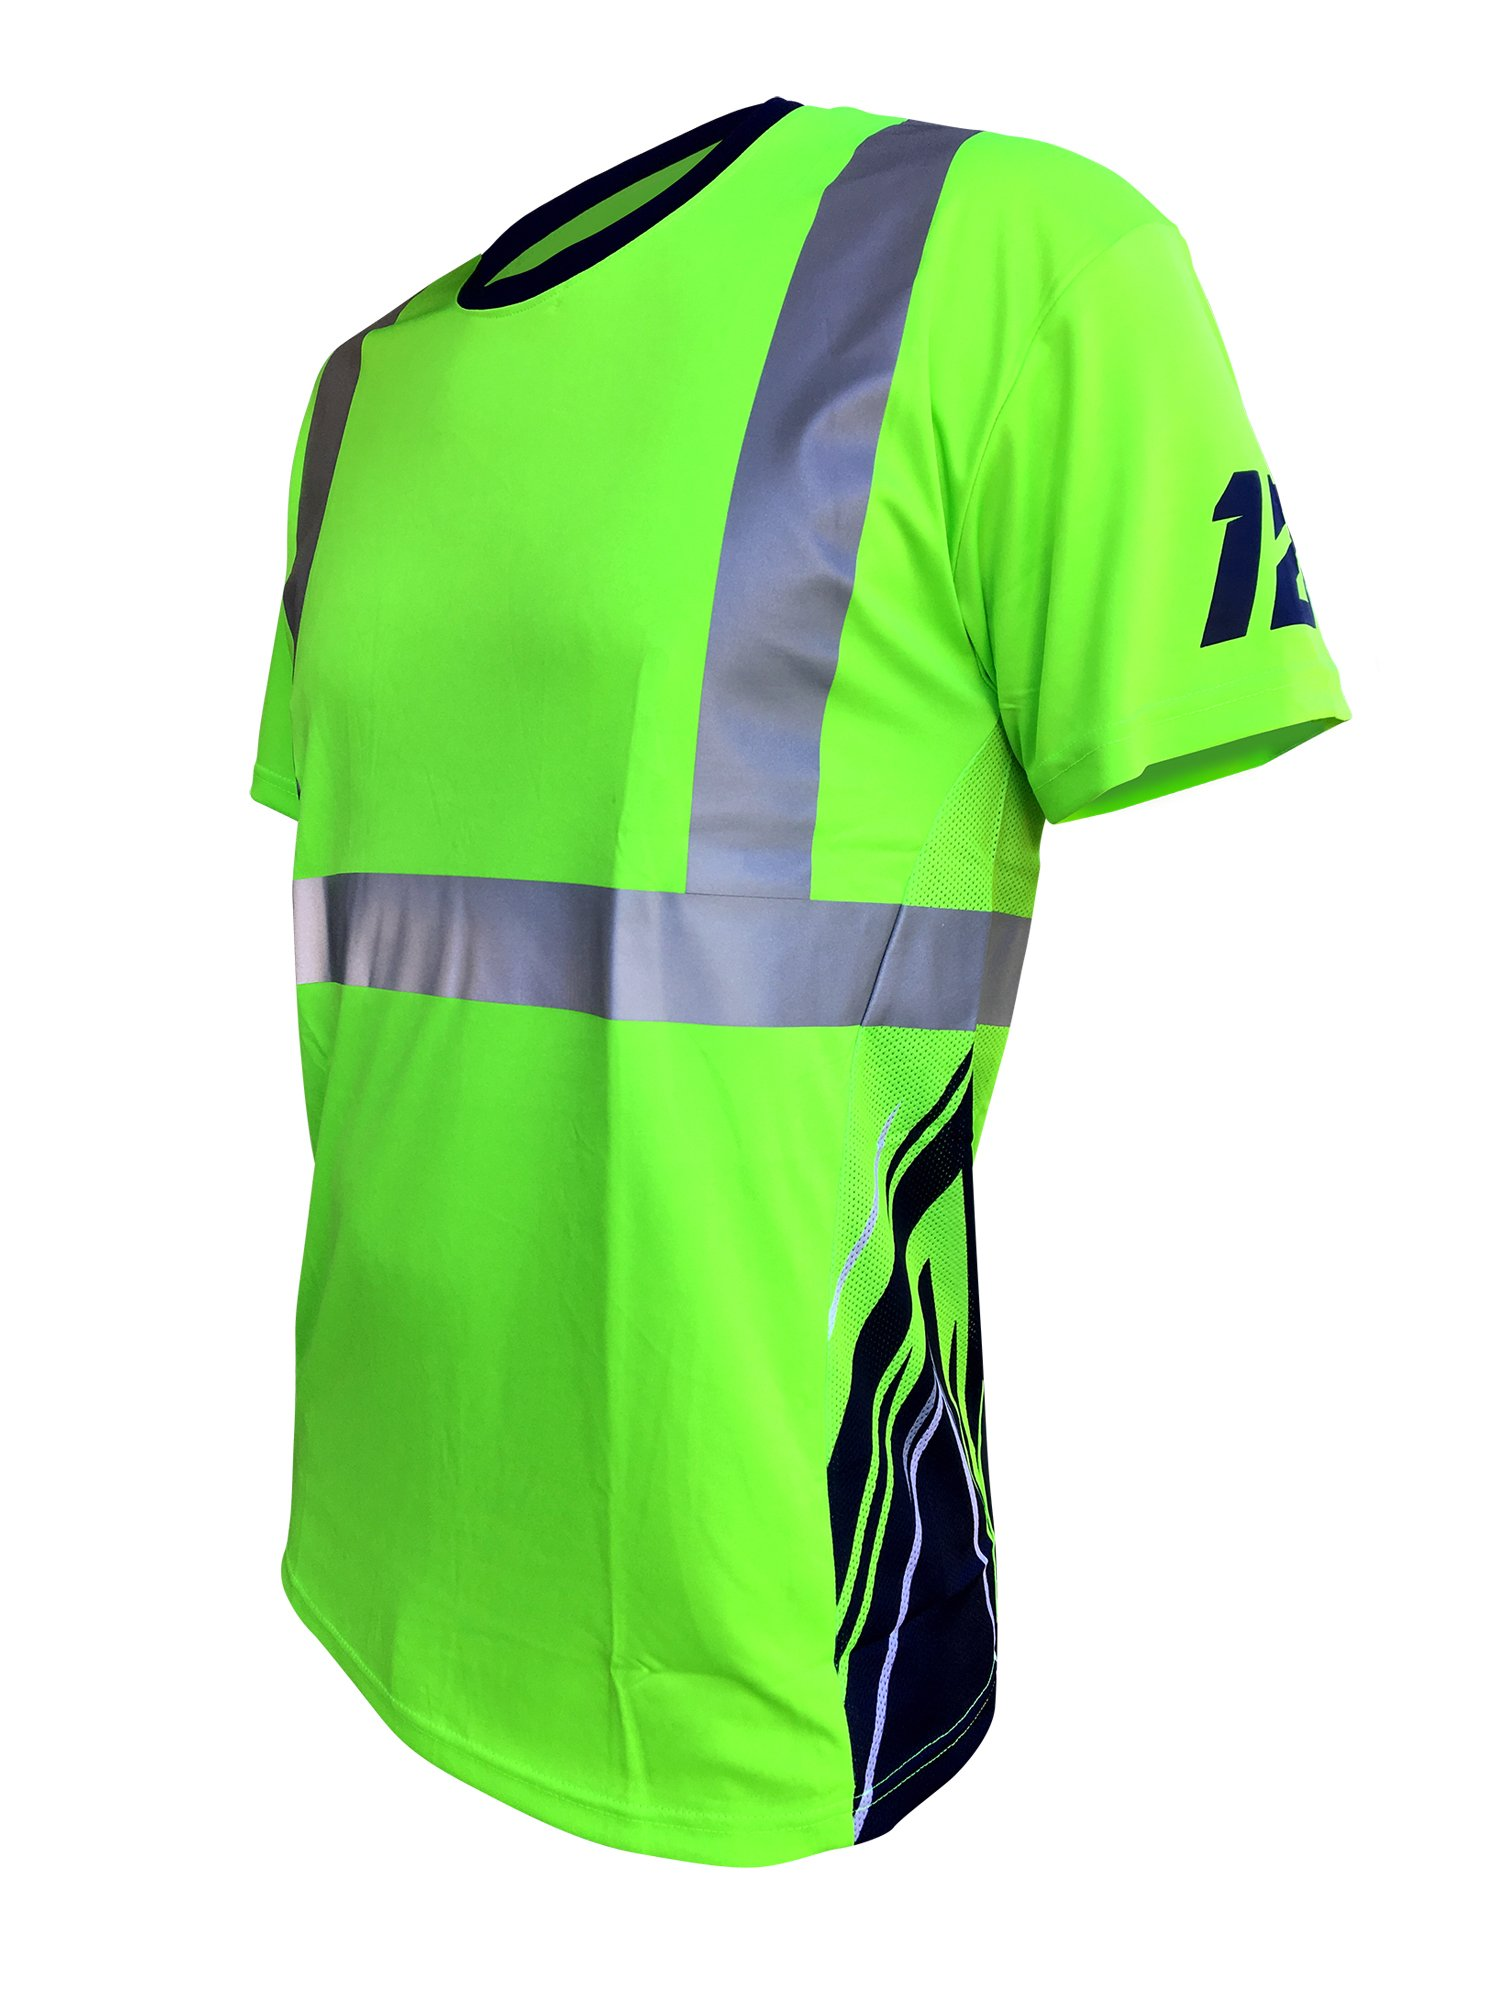 SafetyShirtz SS360 Seattle Twelve Safety Tee ANSI Class 2 L